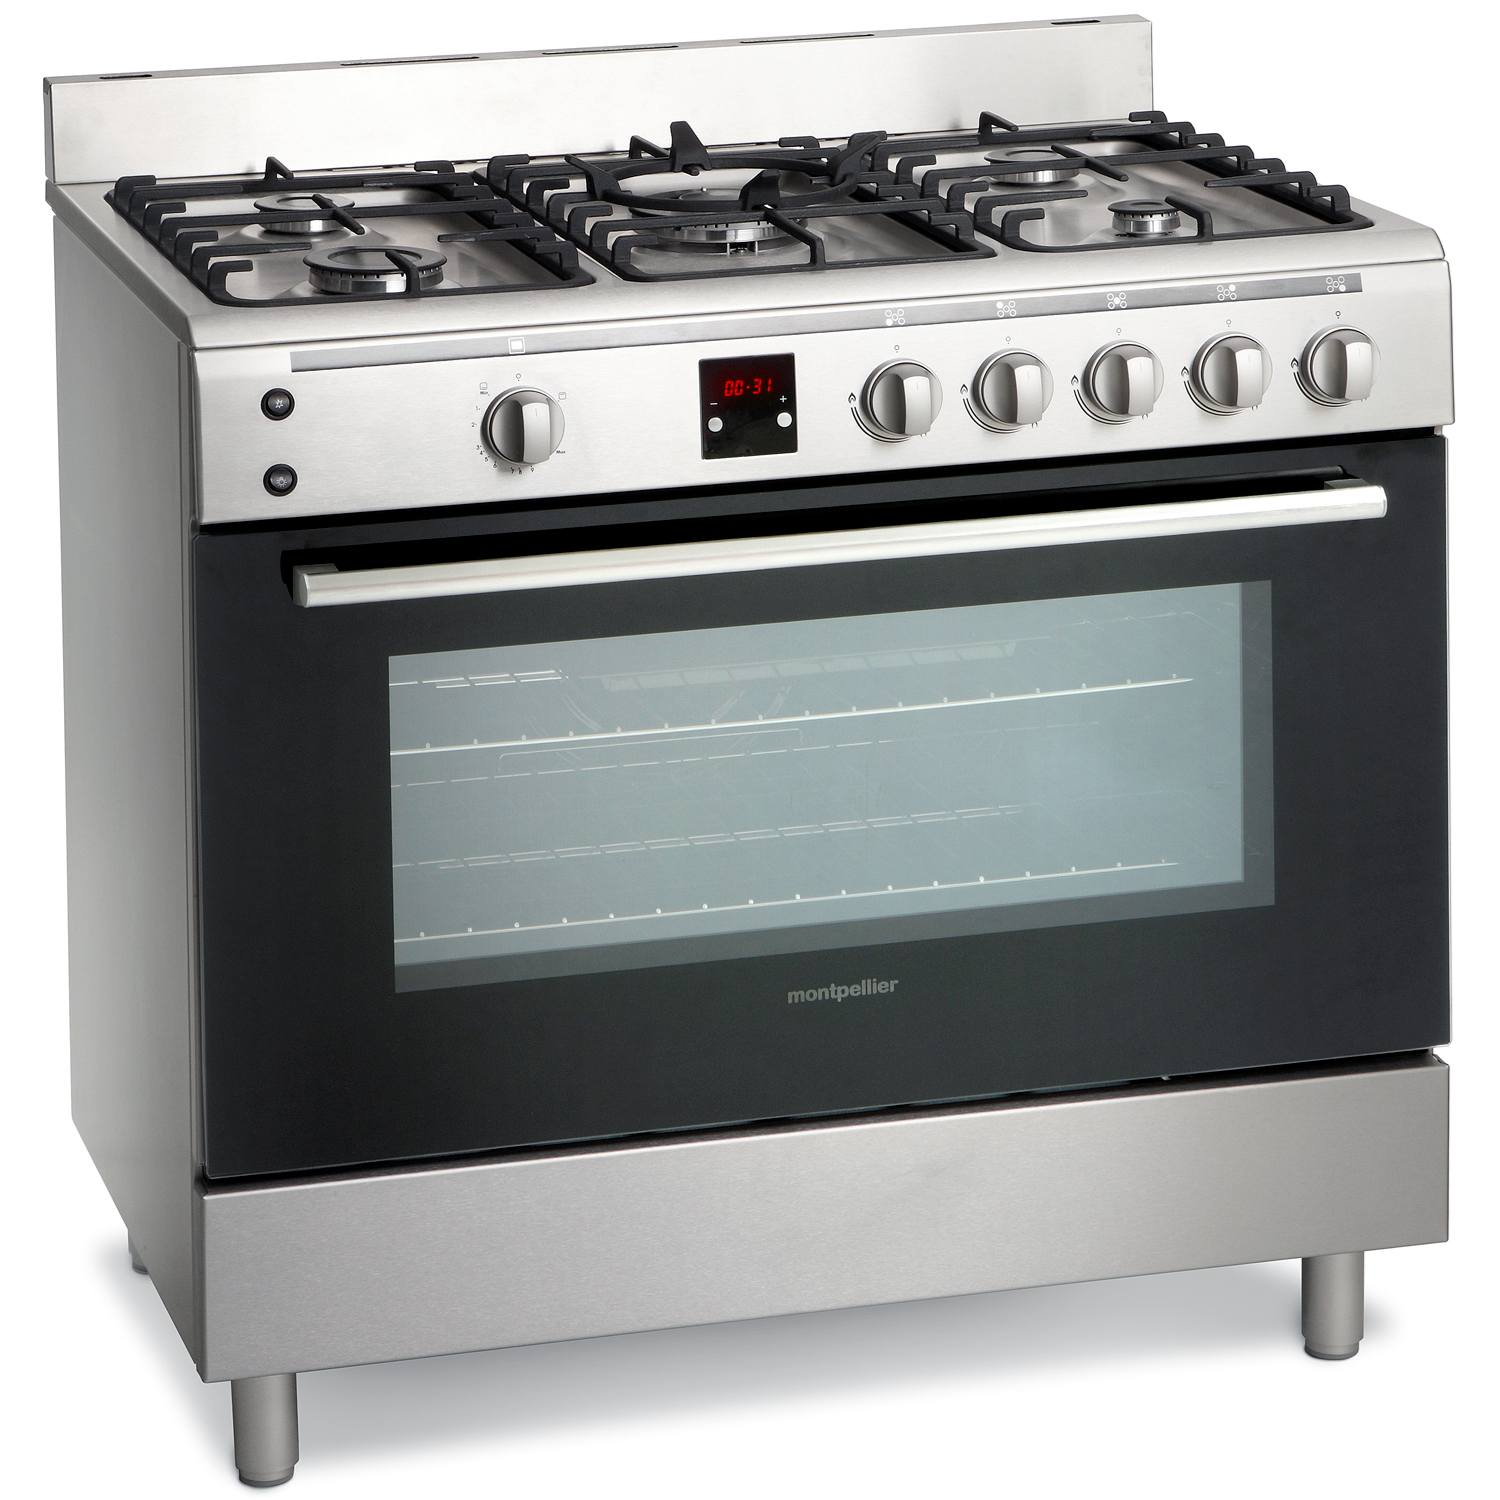 montpellier mr90gox 90cm single cavity gas range cooker in. Black Bedroom Furniture Sets. Home Design Ideas